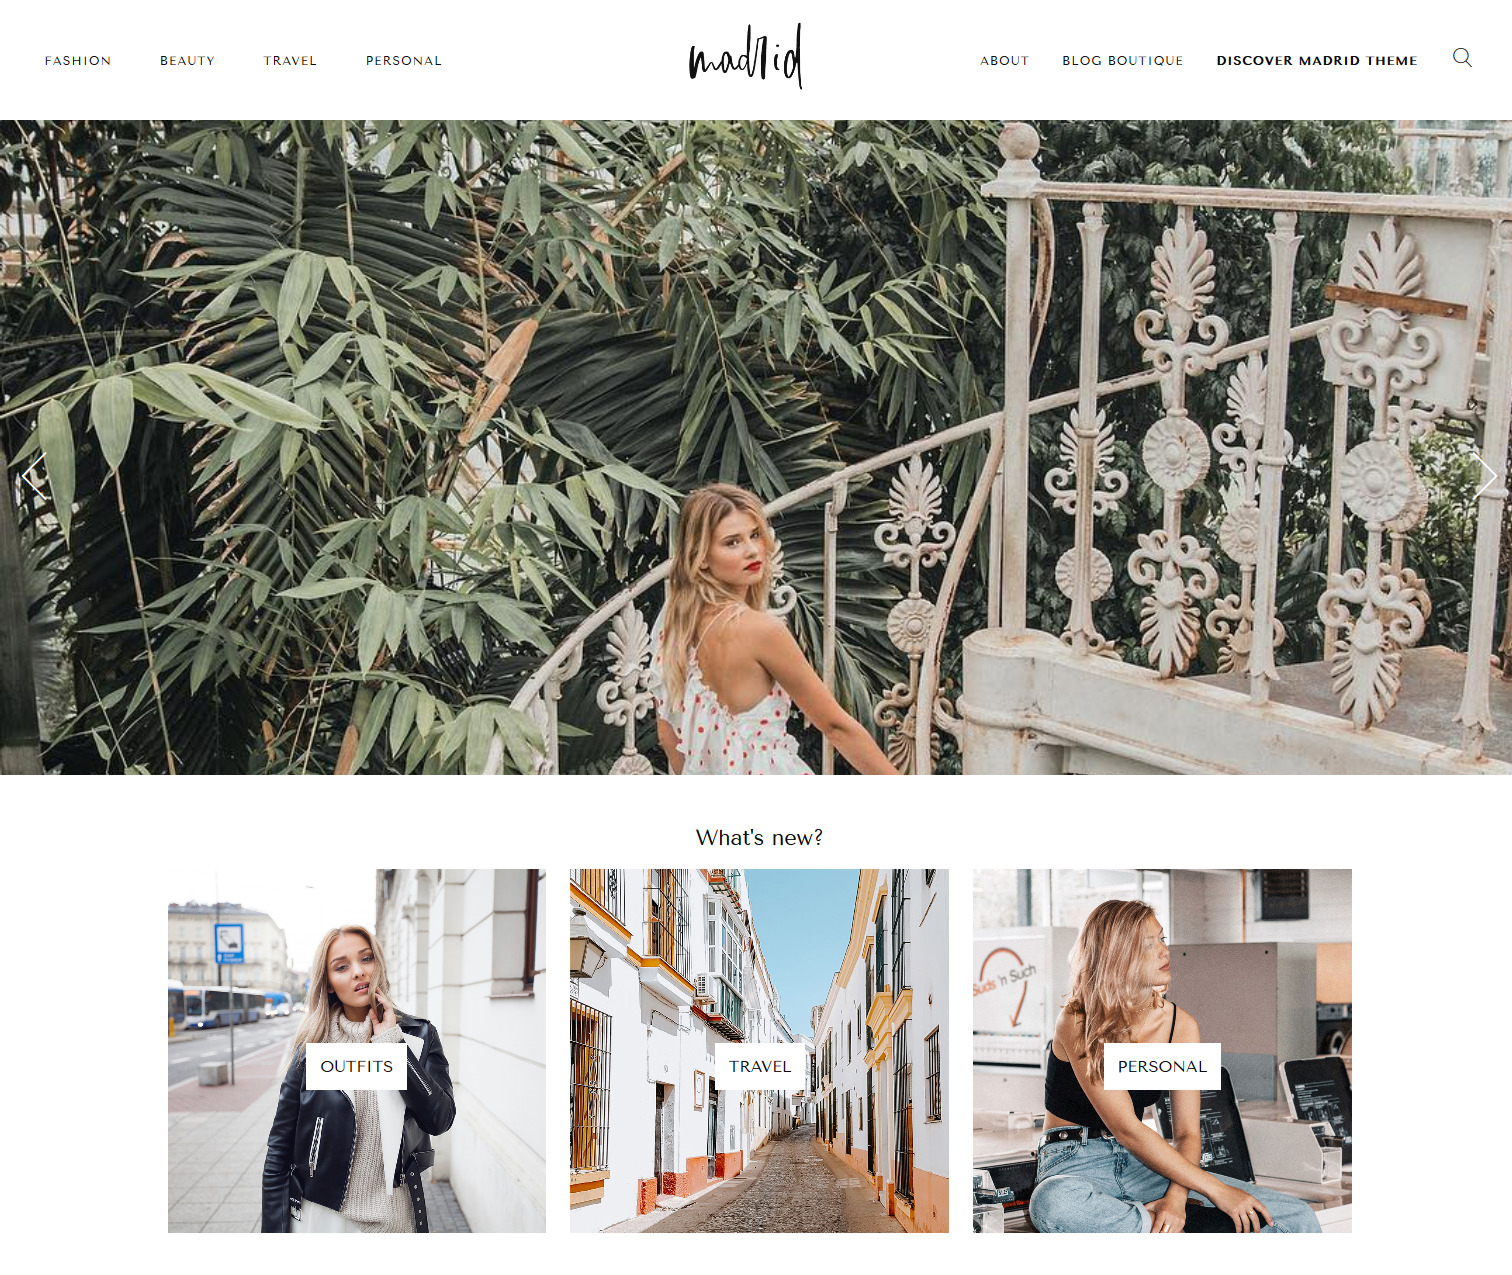 Madrid - A WordPress Theme for Fashion Bloggers - easy to install and customize - Shopping Affiliate Features - Make Money with Blogging and this theme is easy